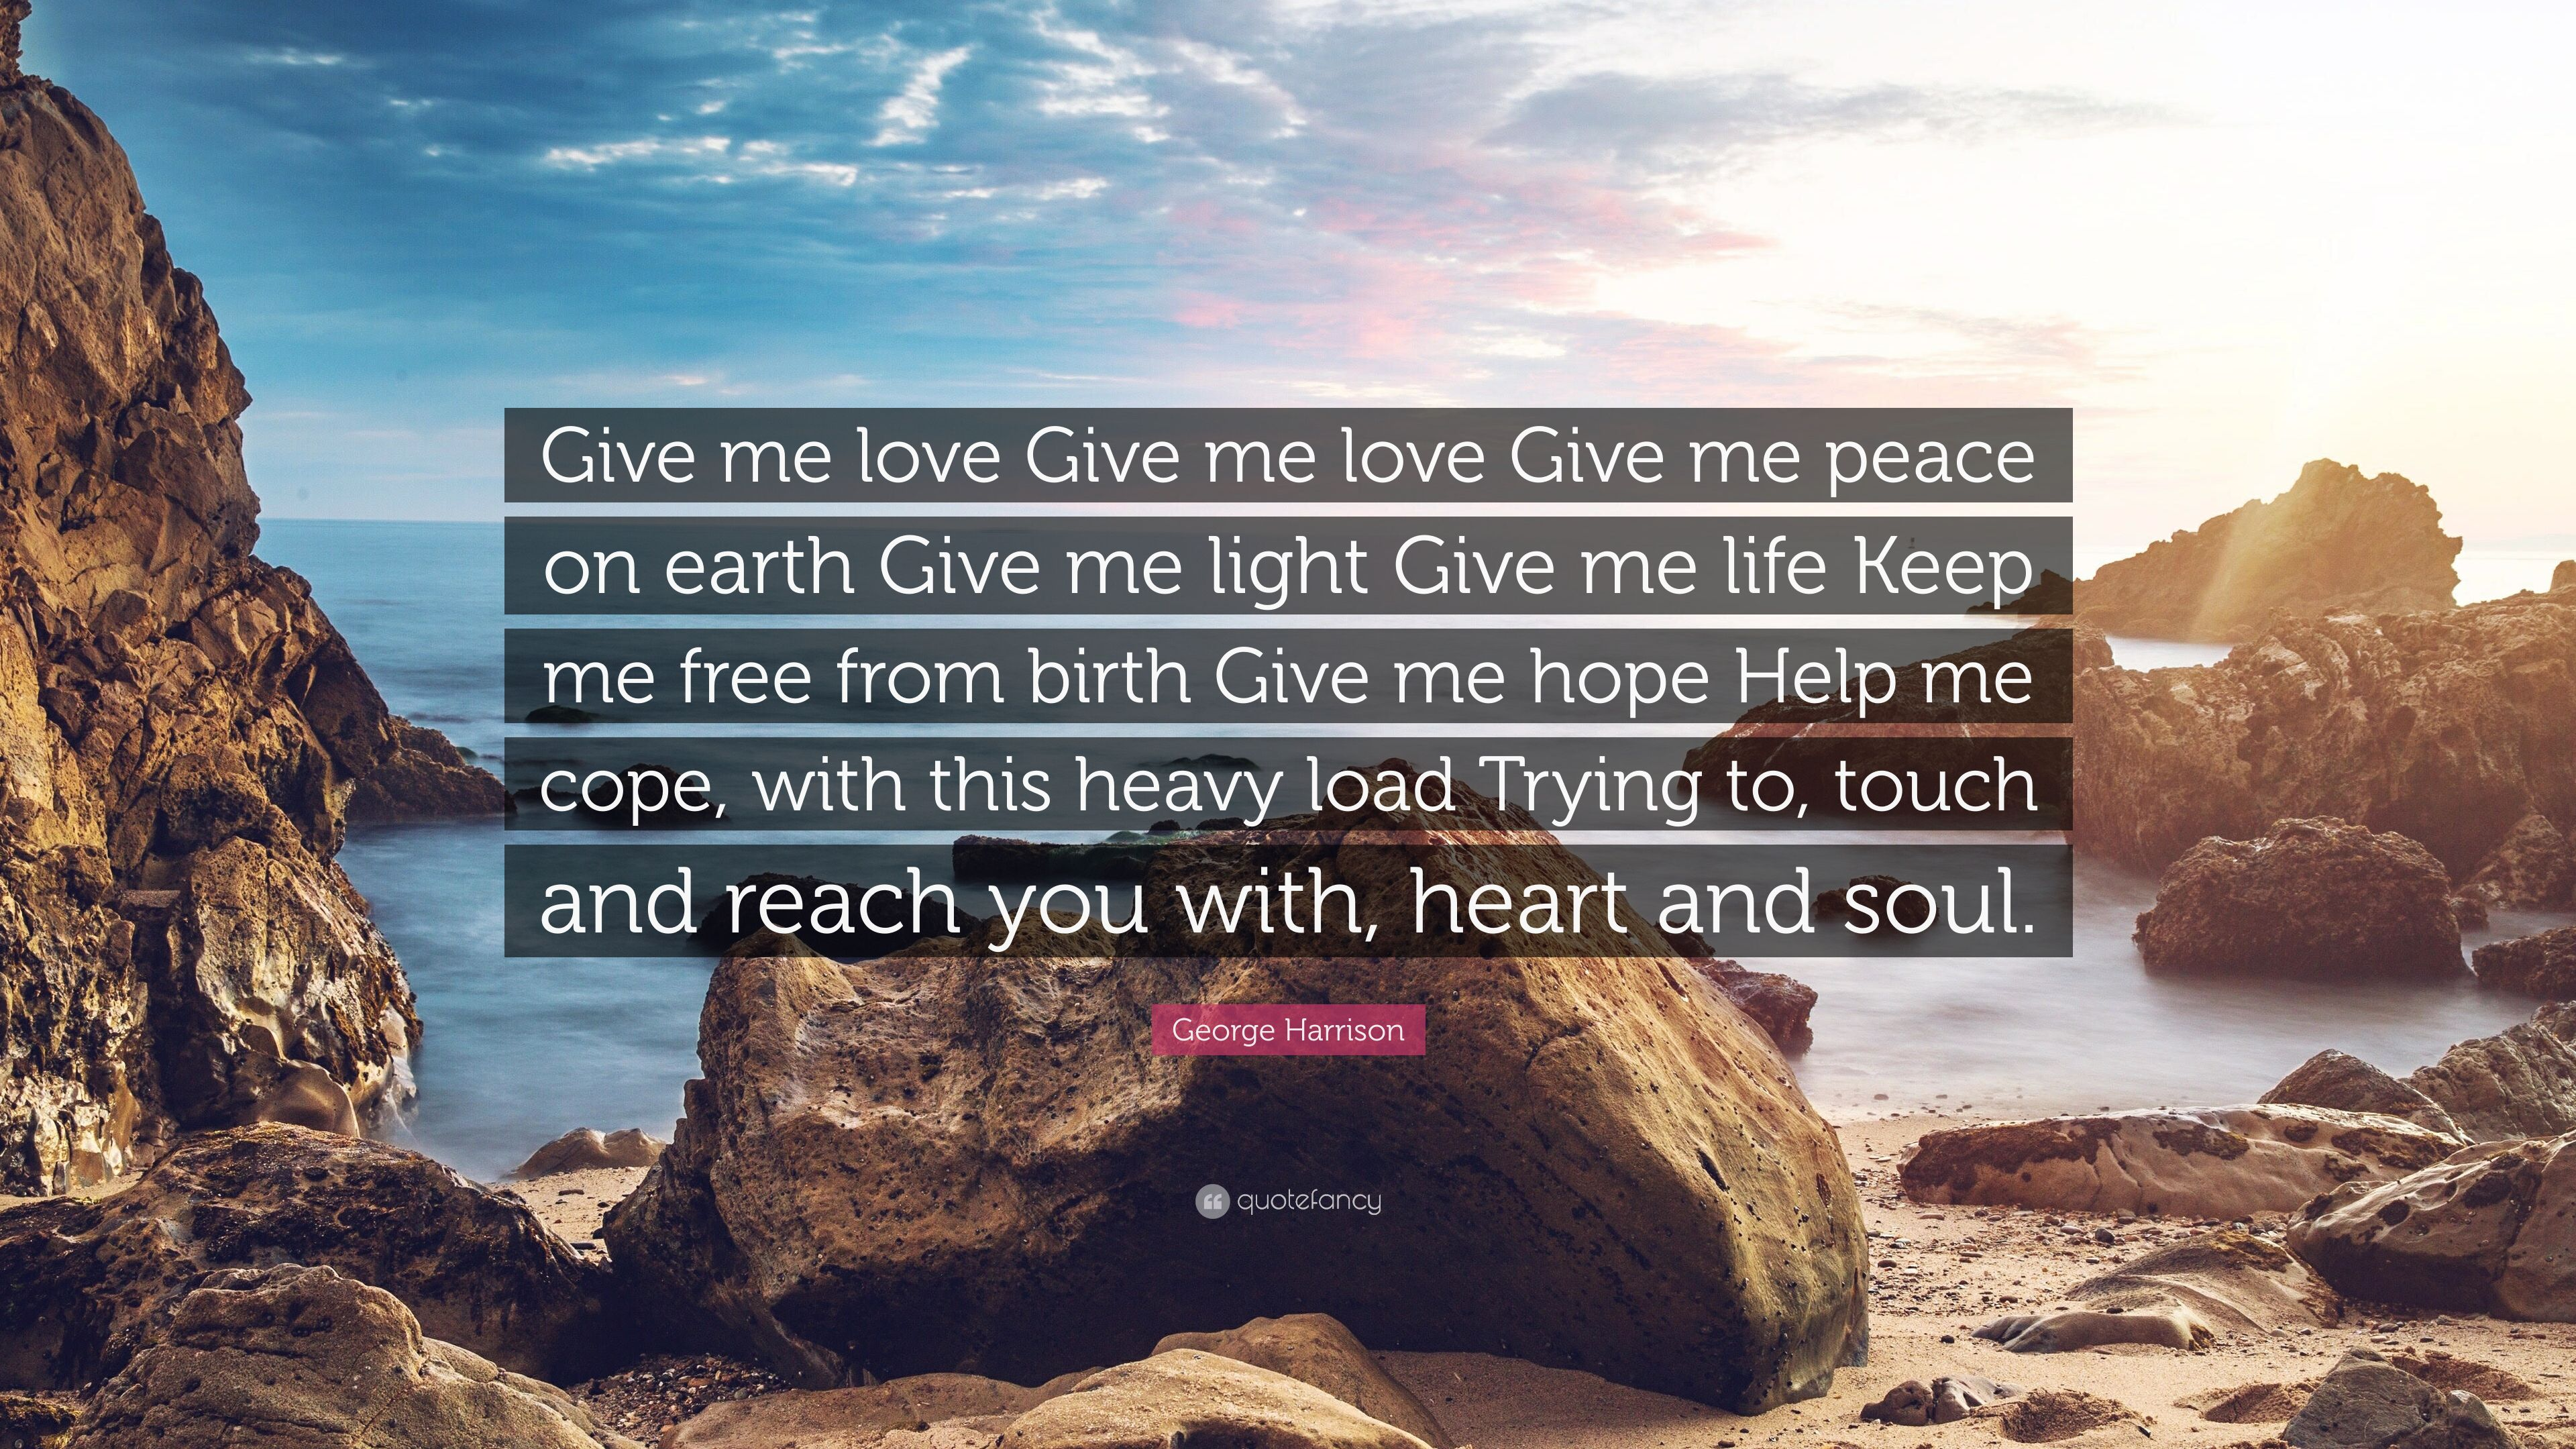 George Harrison Quote: U201cGive Me Love Give Me Love Give Me Peace On Earth